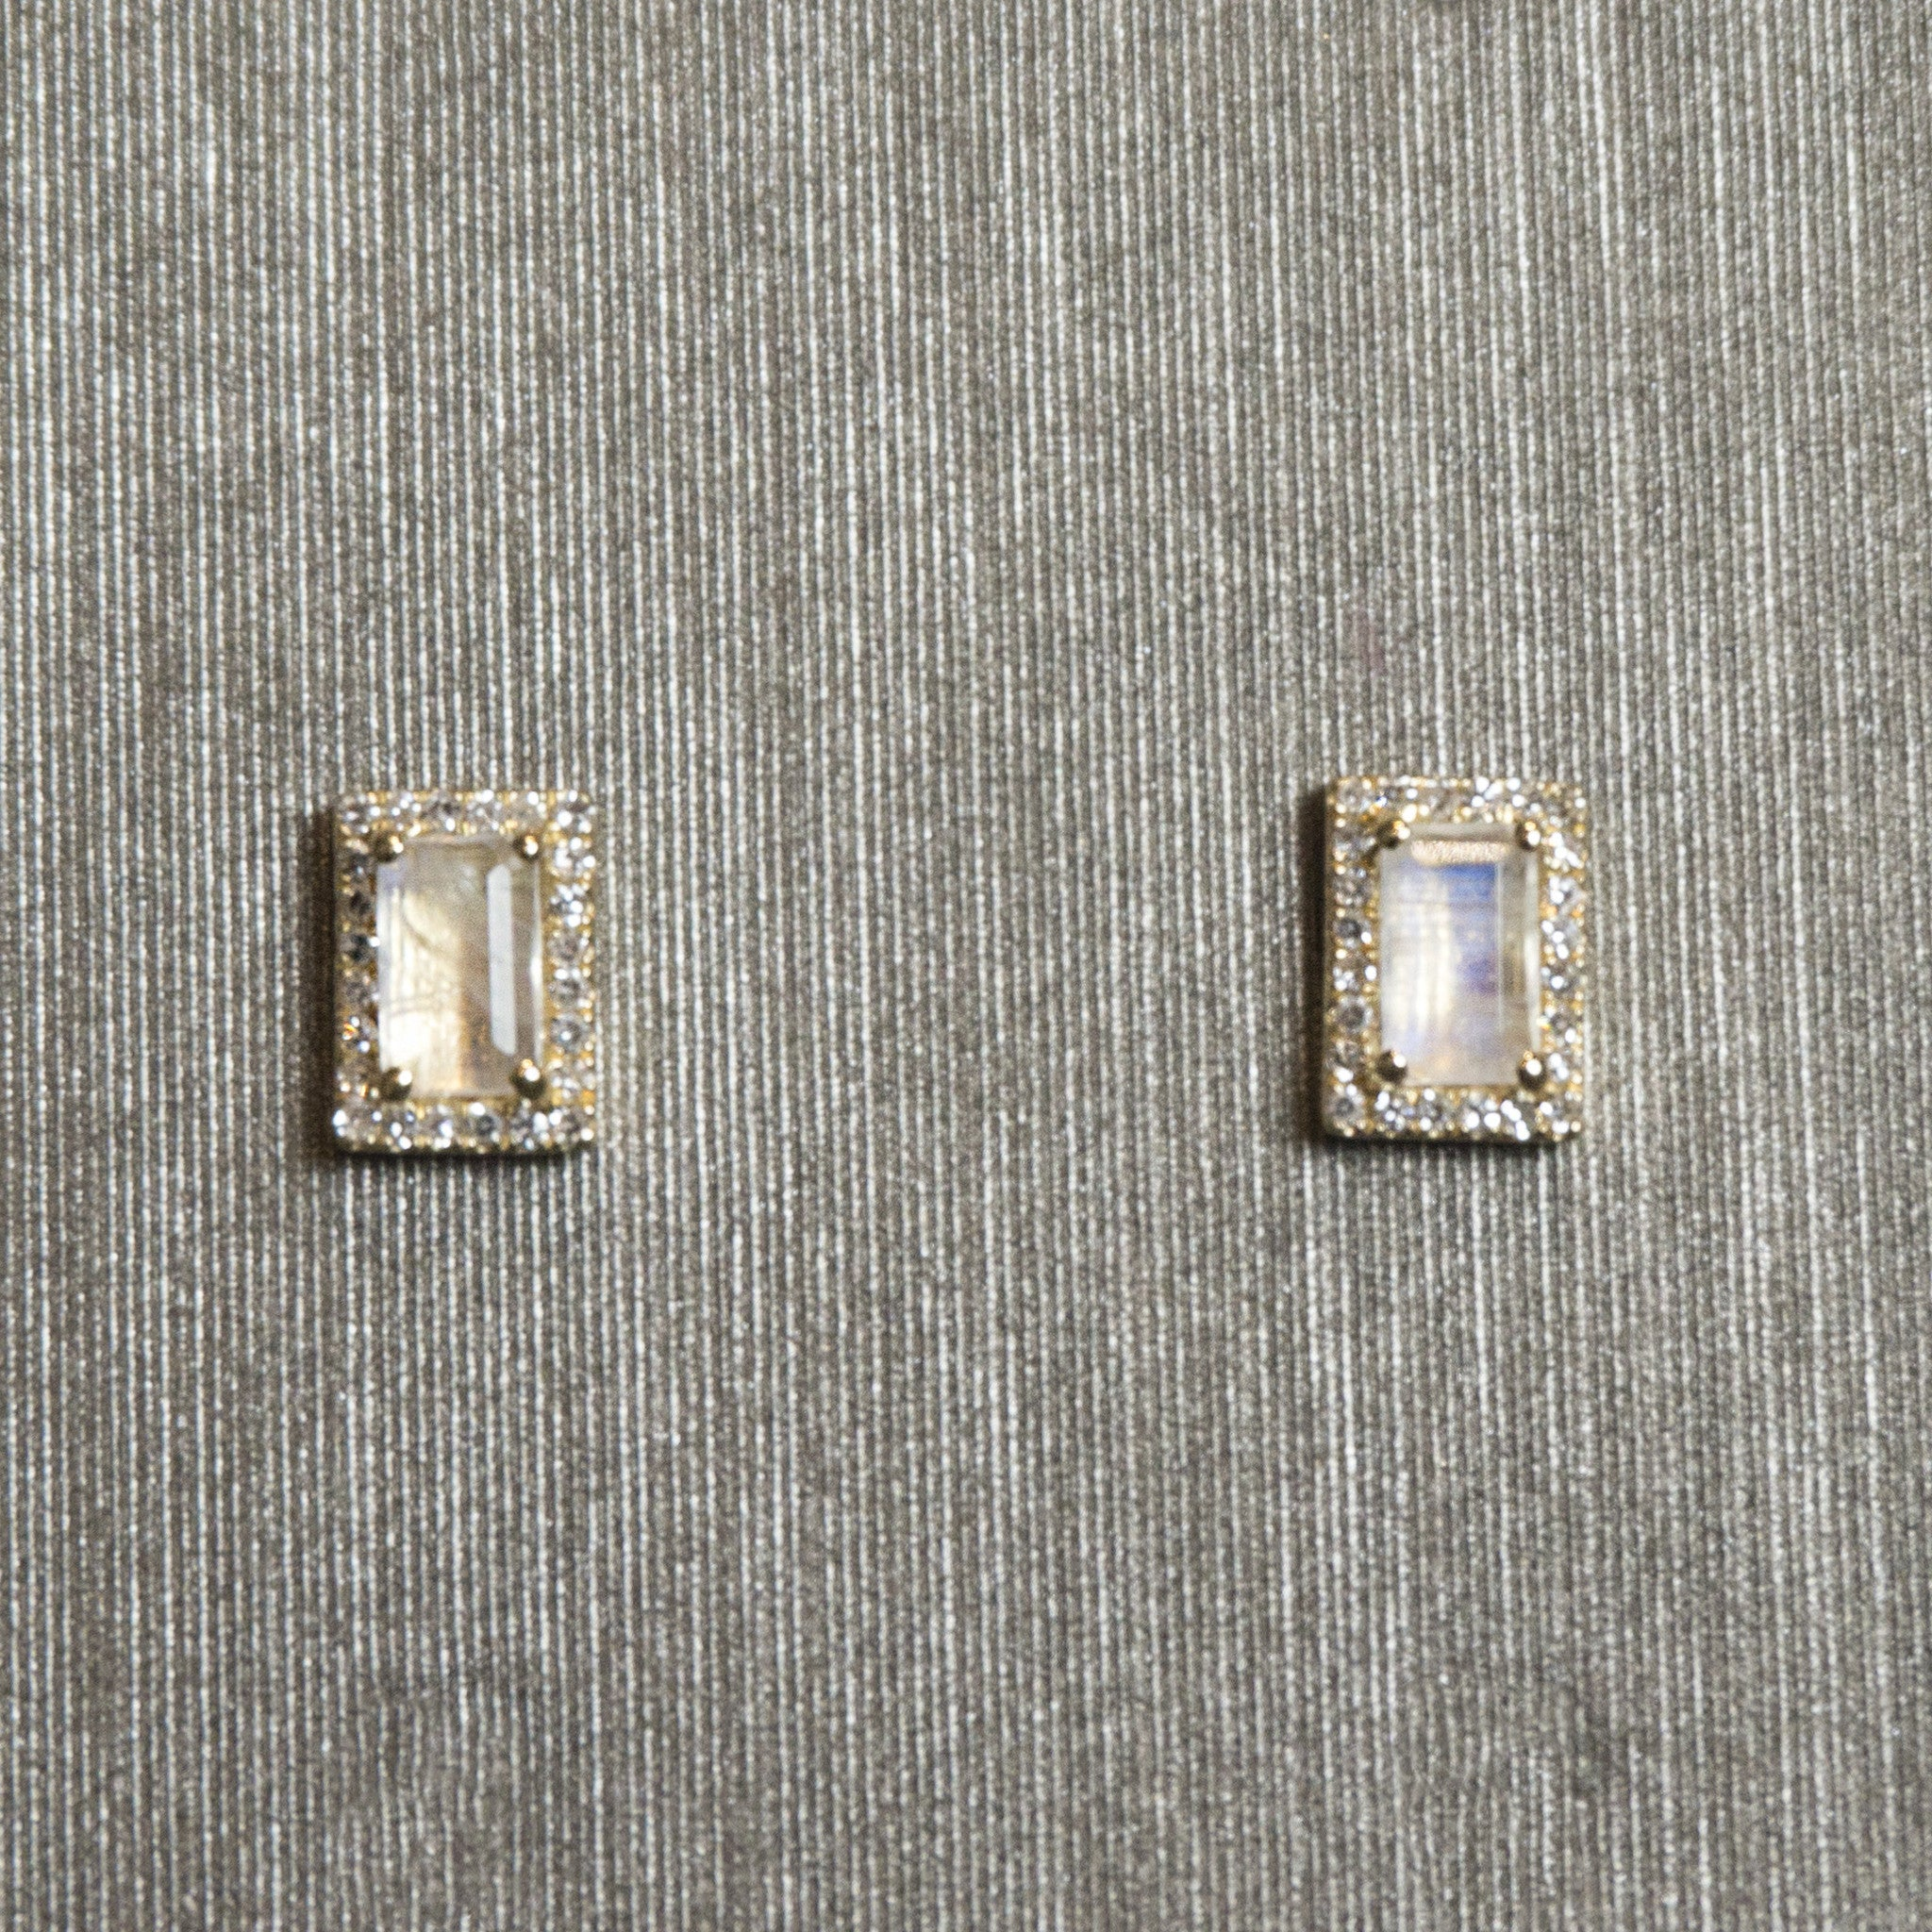 Rocks with Soul Moonstone and Diamond Studs Yellow Gold